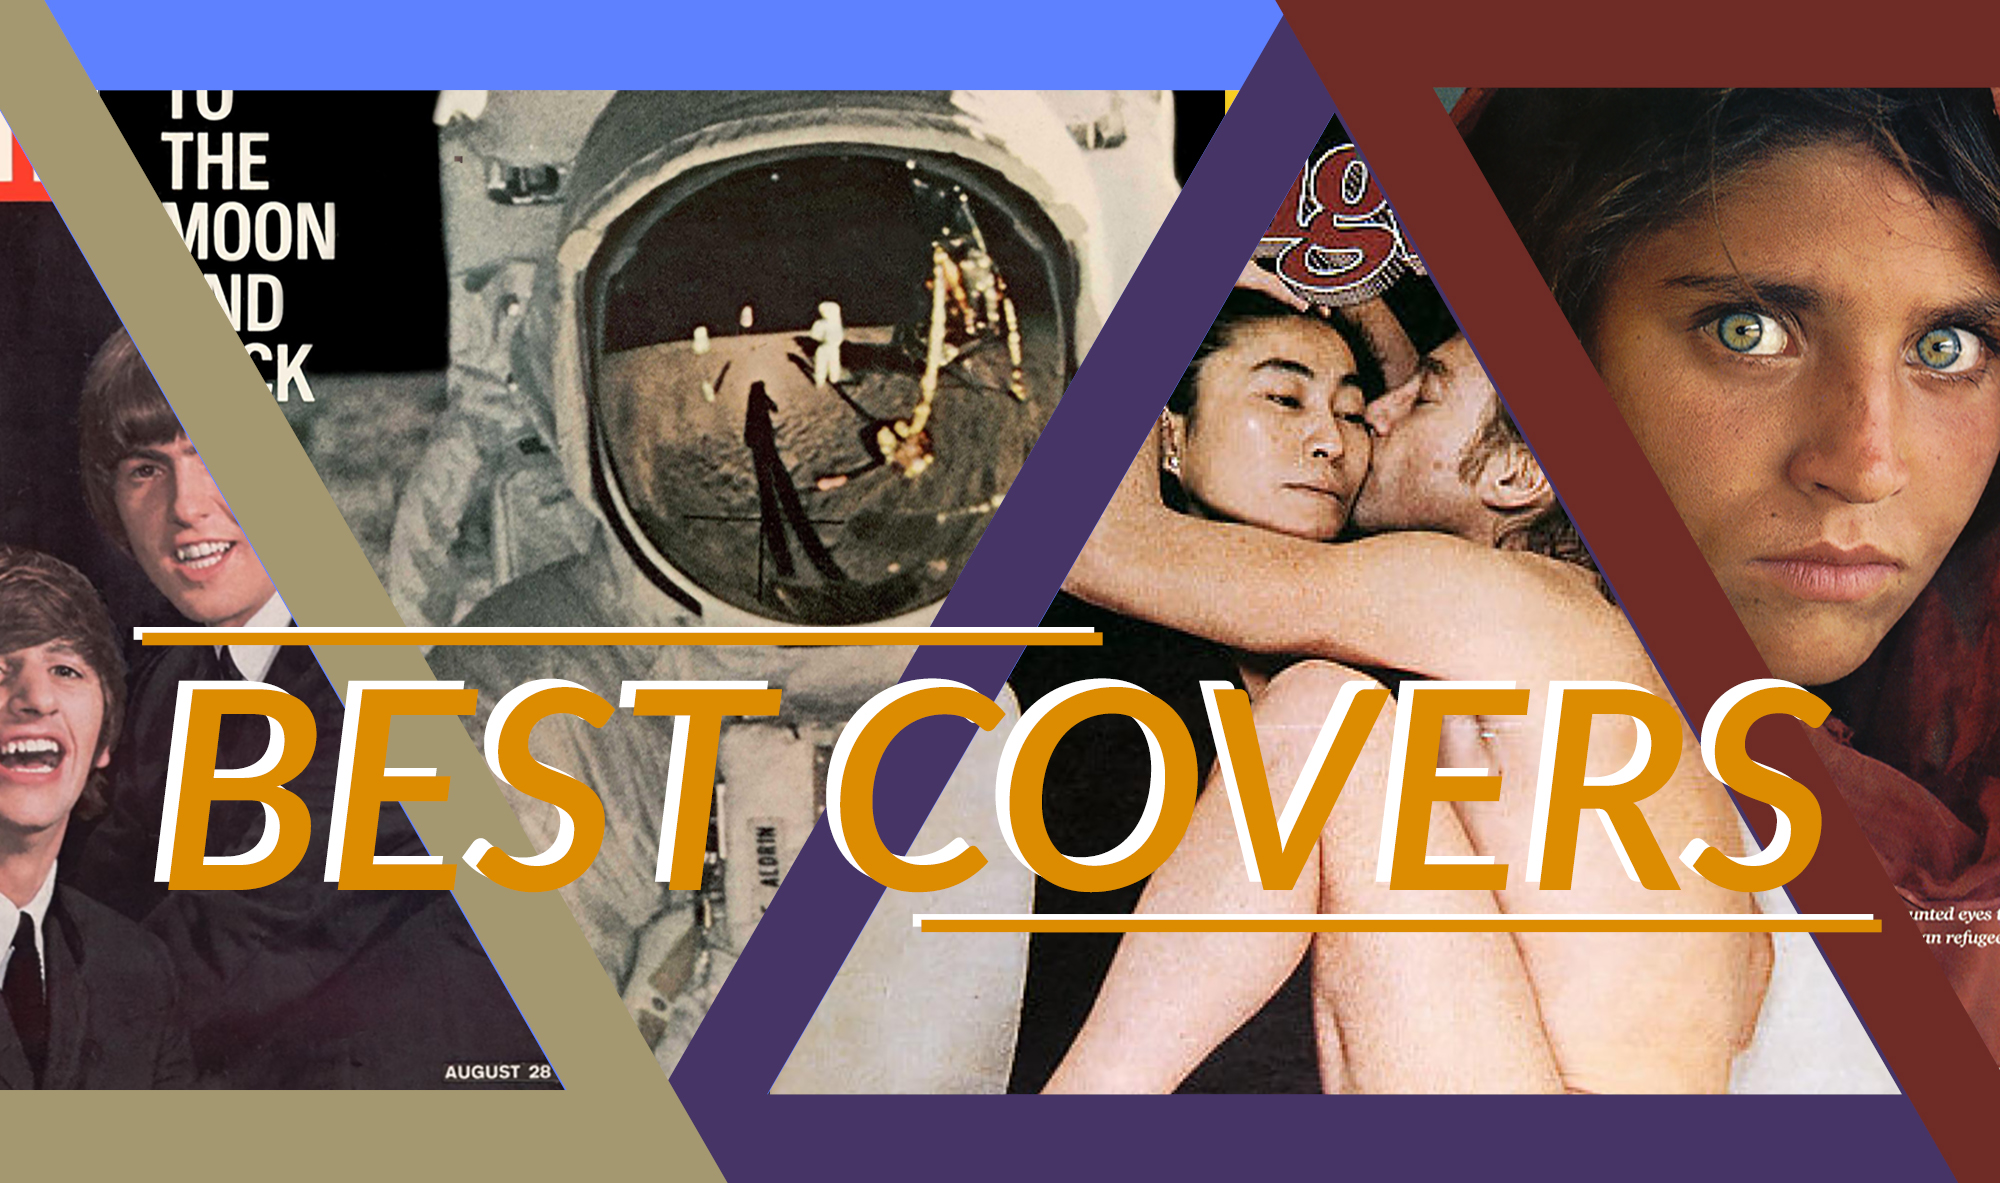 The Italian Reve The 10 Most Iconic Magazine Covers Of All Time